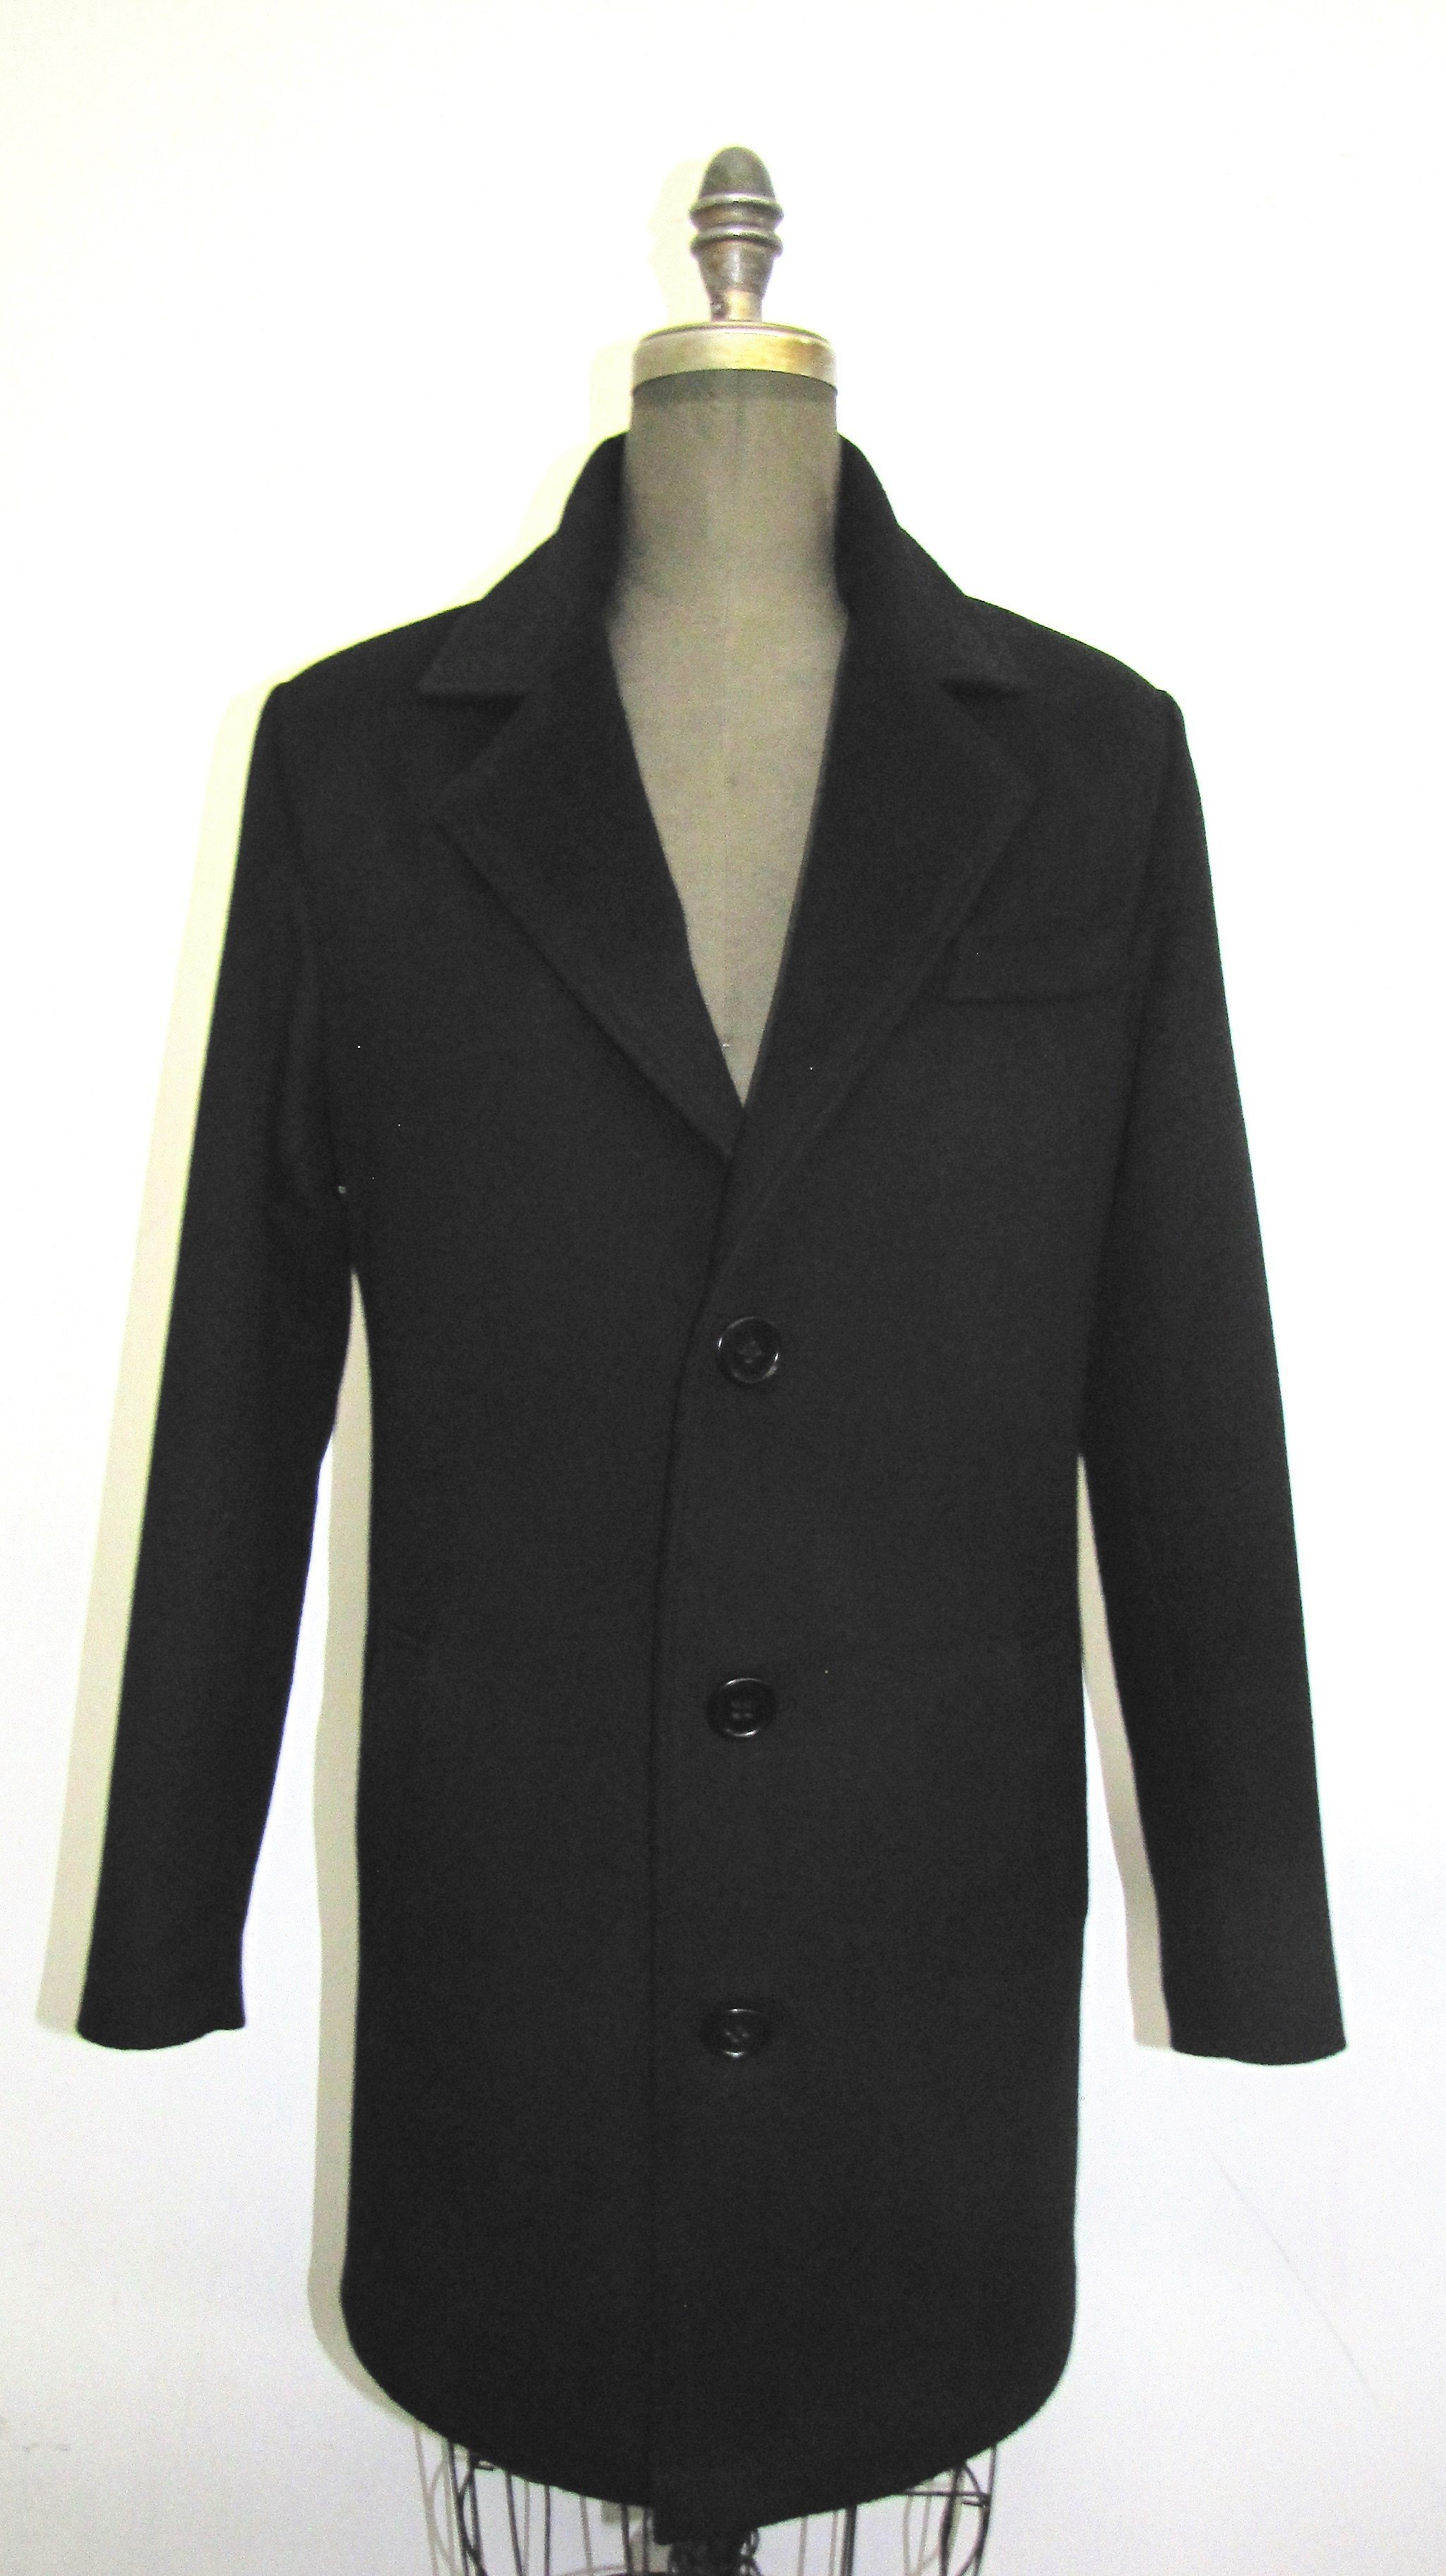 Style # M500 - Black Cashmere & Wool  Features:  Elevate your smart and casual looks  with this wool blend overcoat. Notched collar, breast pocket single breasted , three button fastening,  and centre vent for ease of movement.  In-Stock Colours: Black, Navy, Charcol  Sizes: S, M, L  Price:  $ 499 and up